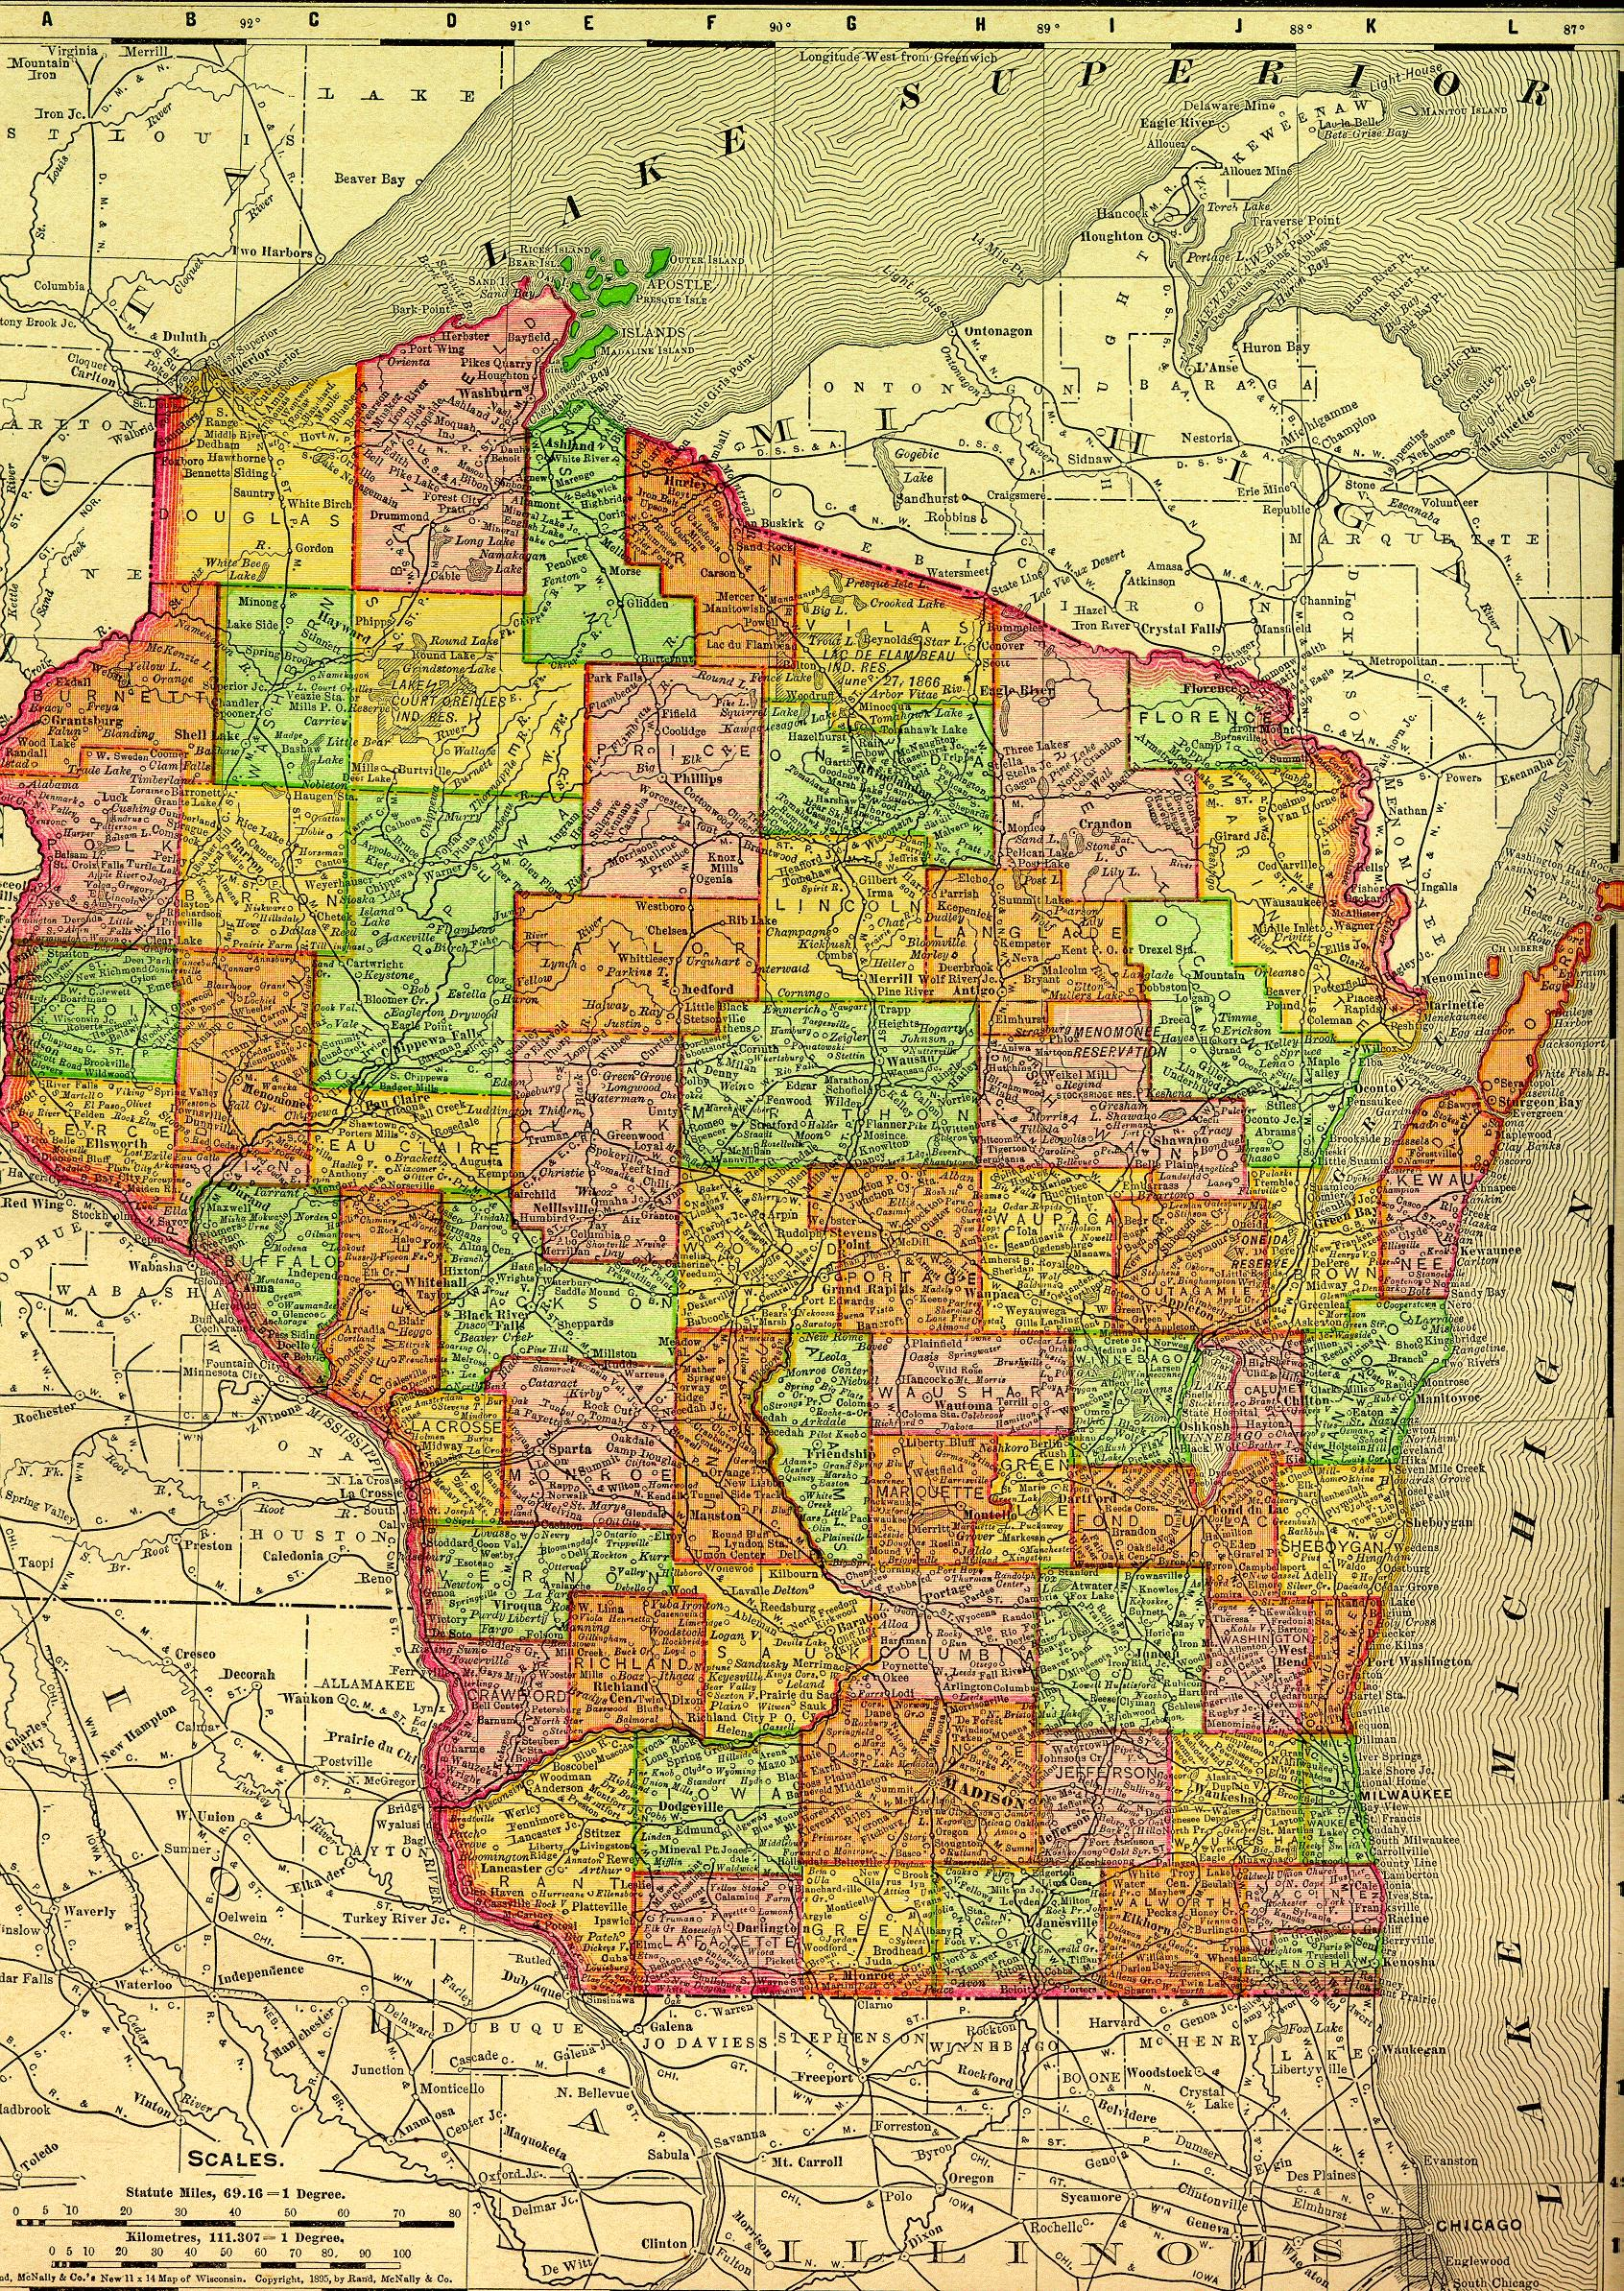 Index Of Clark County Wisconsin Maps Gazetteers - Wisconsin maps